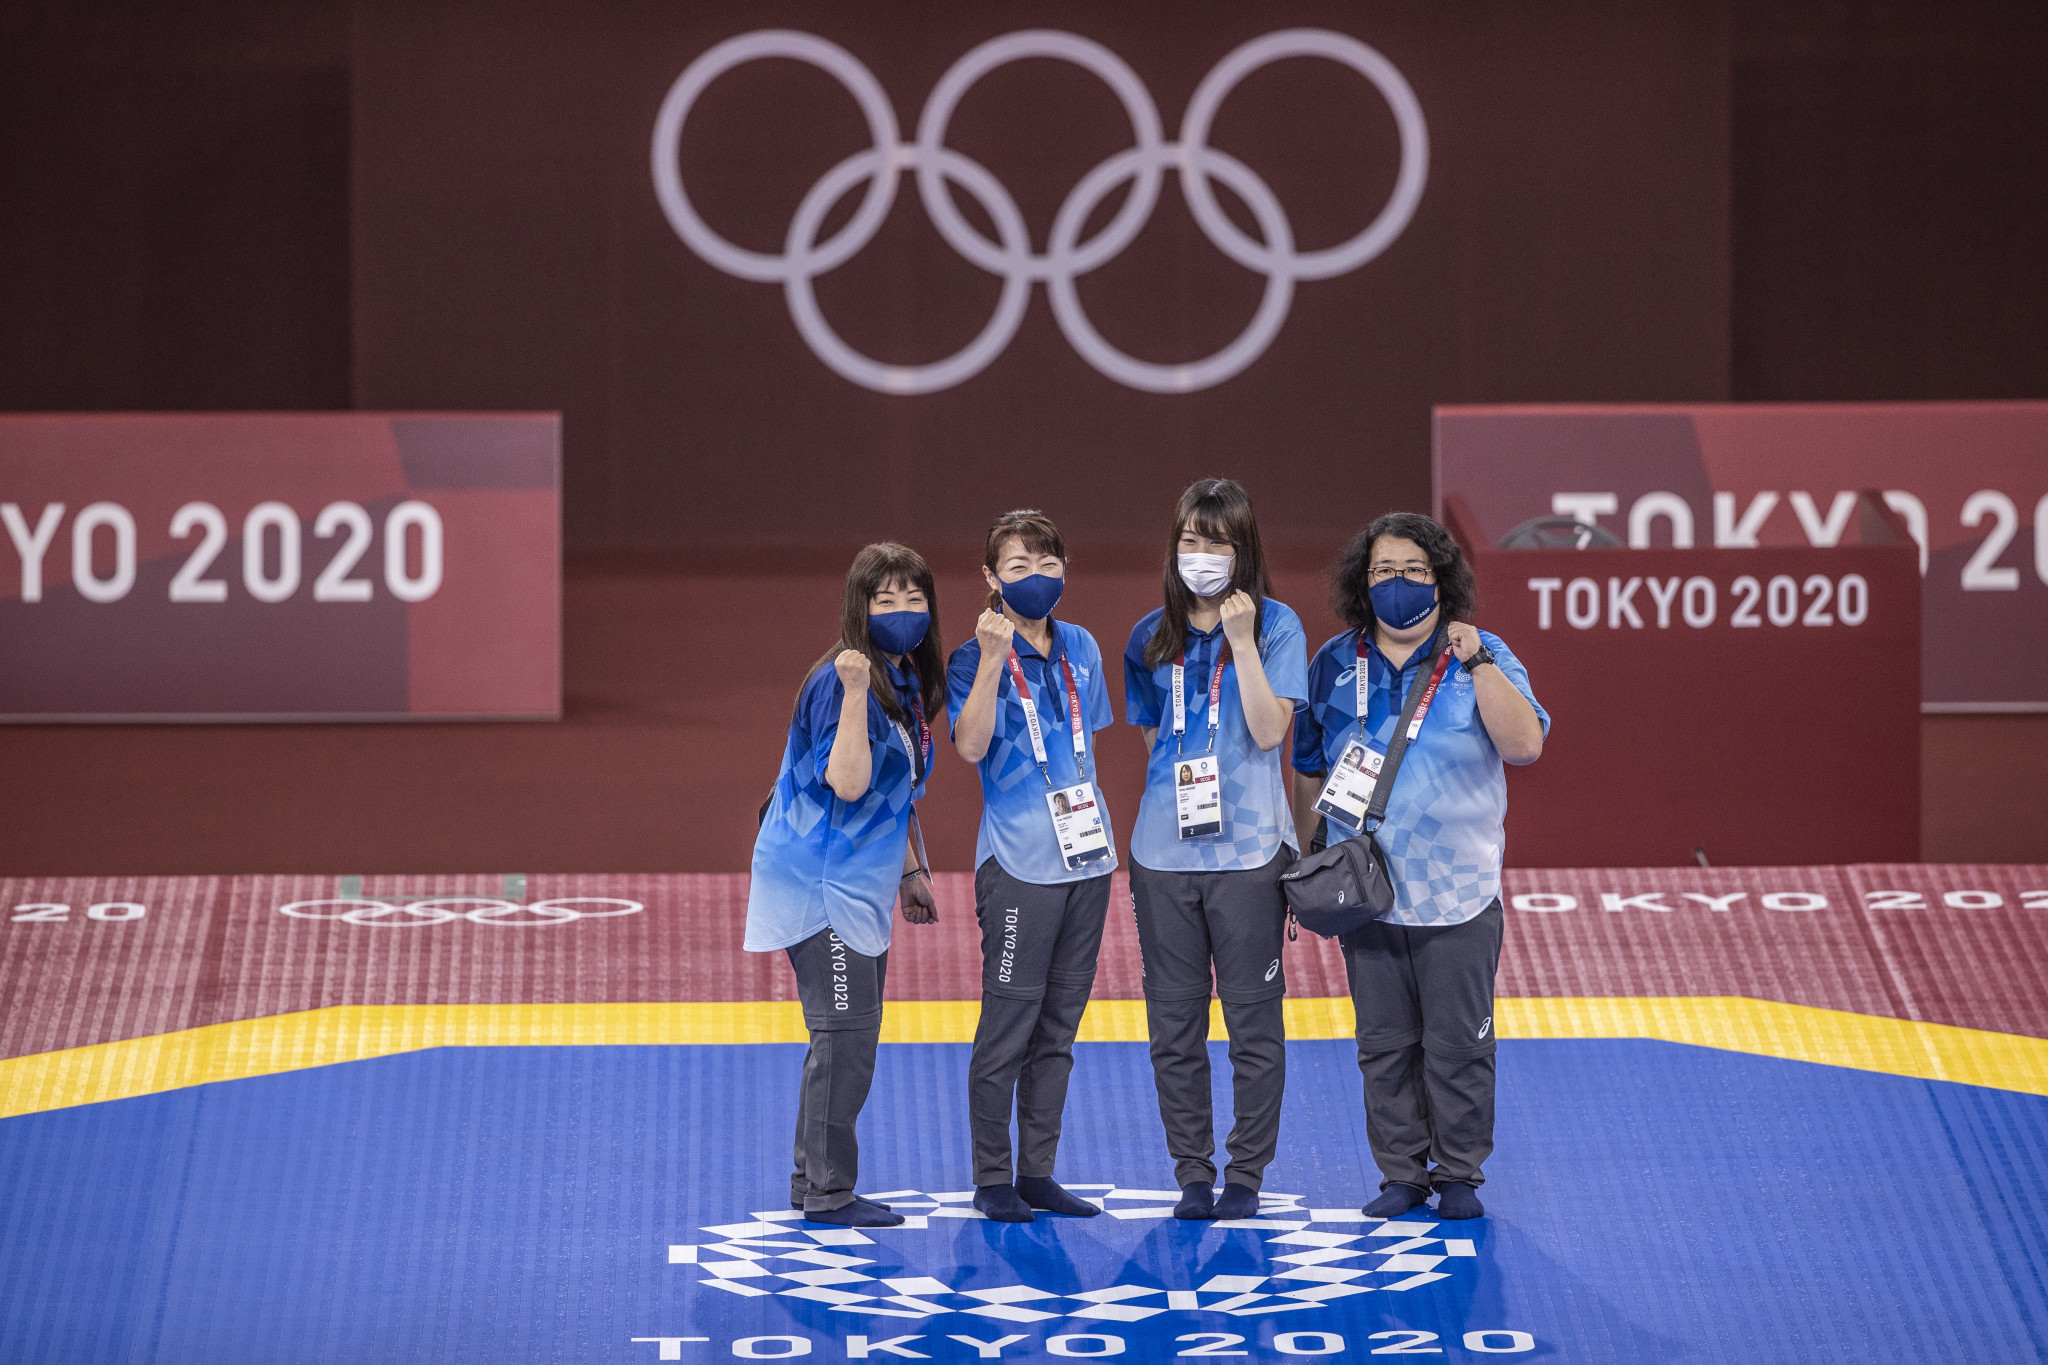 Taekwondo competition will take place at the Makuhari Messe Hall ©Getty Images